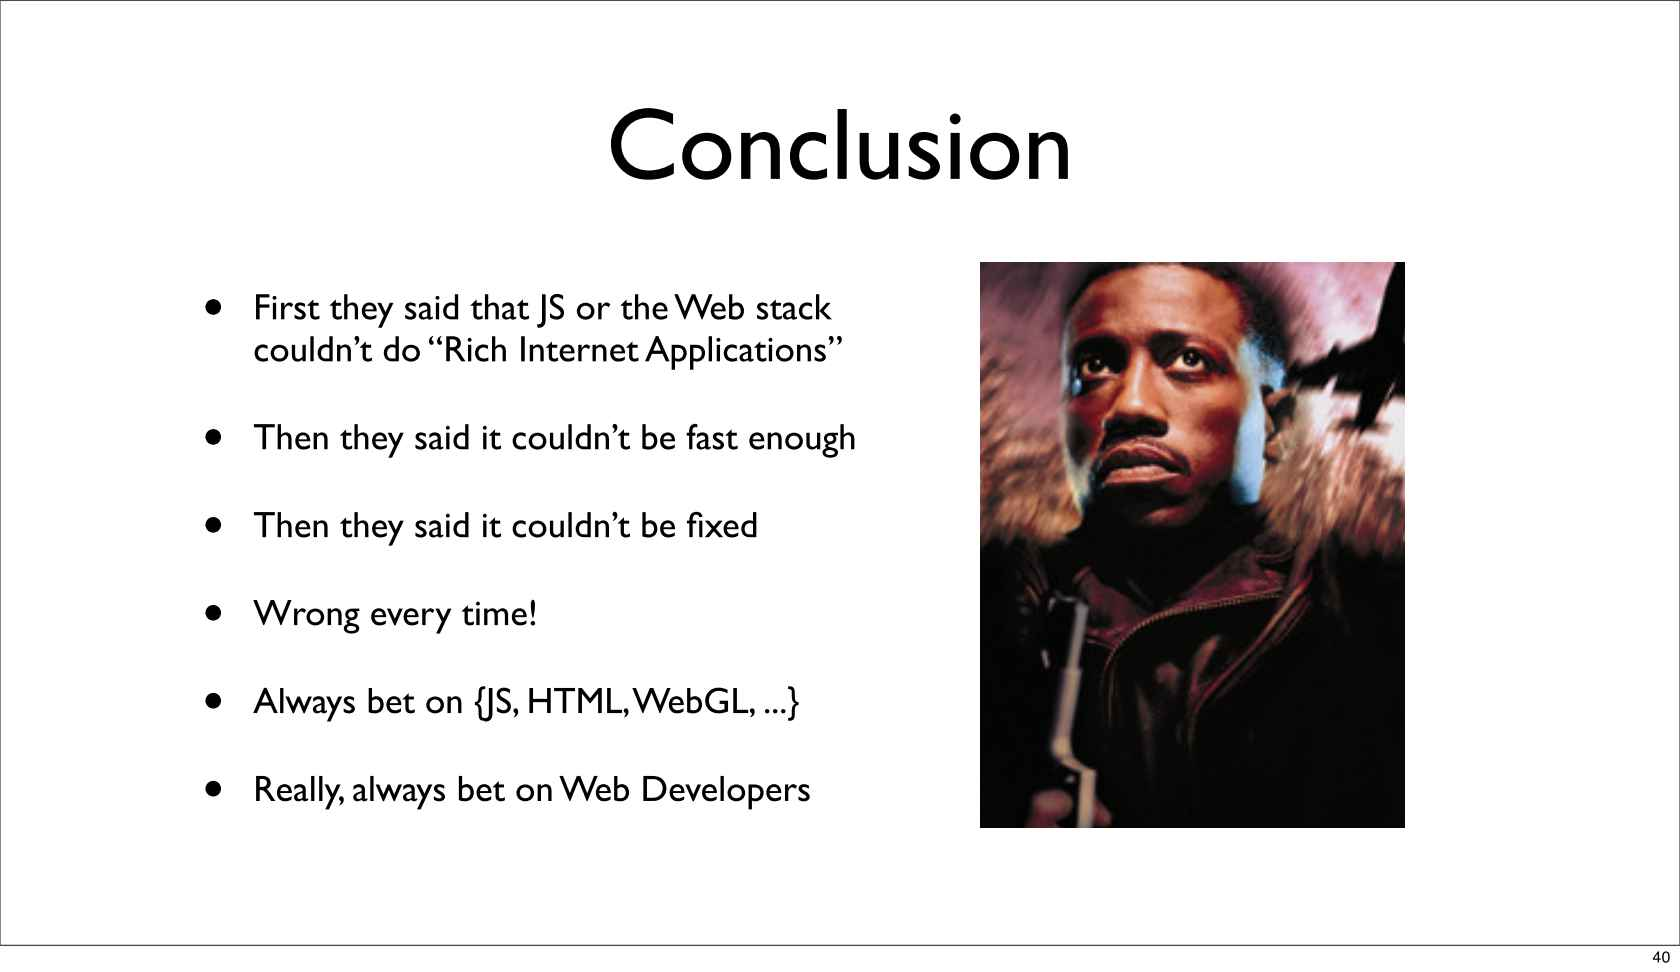 Last slide with the conclusion of the present and future of the web platform talk